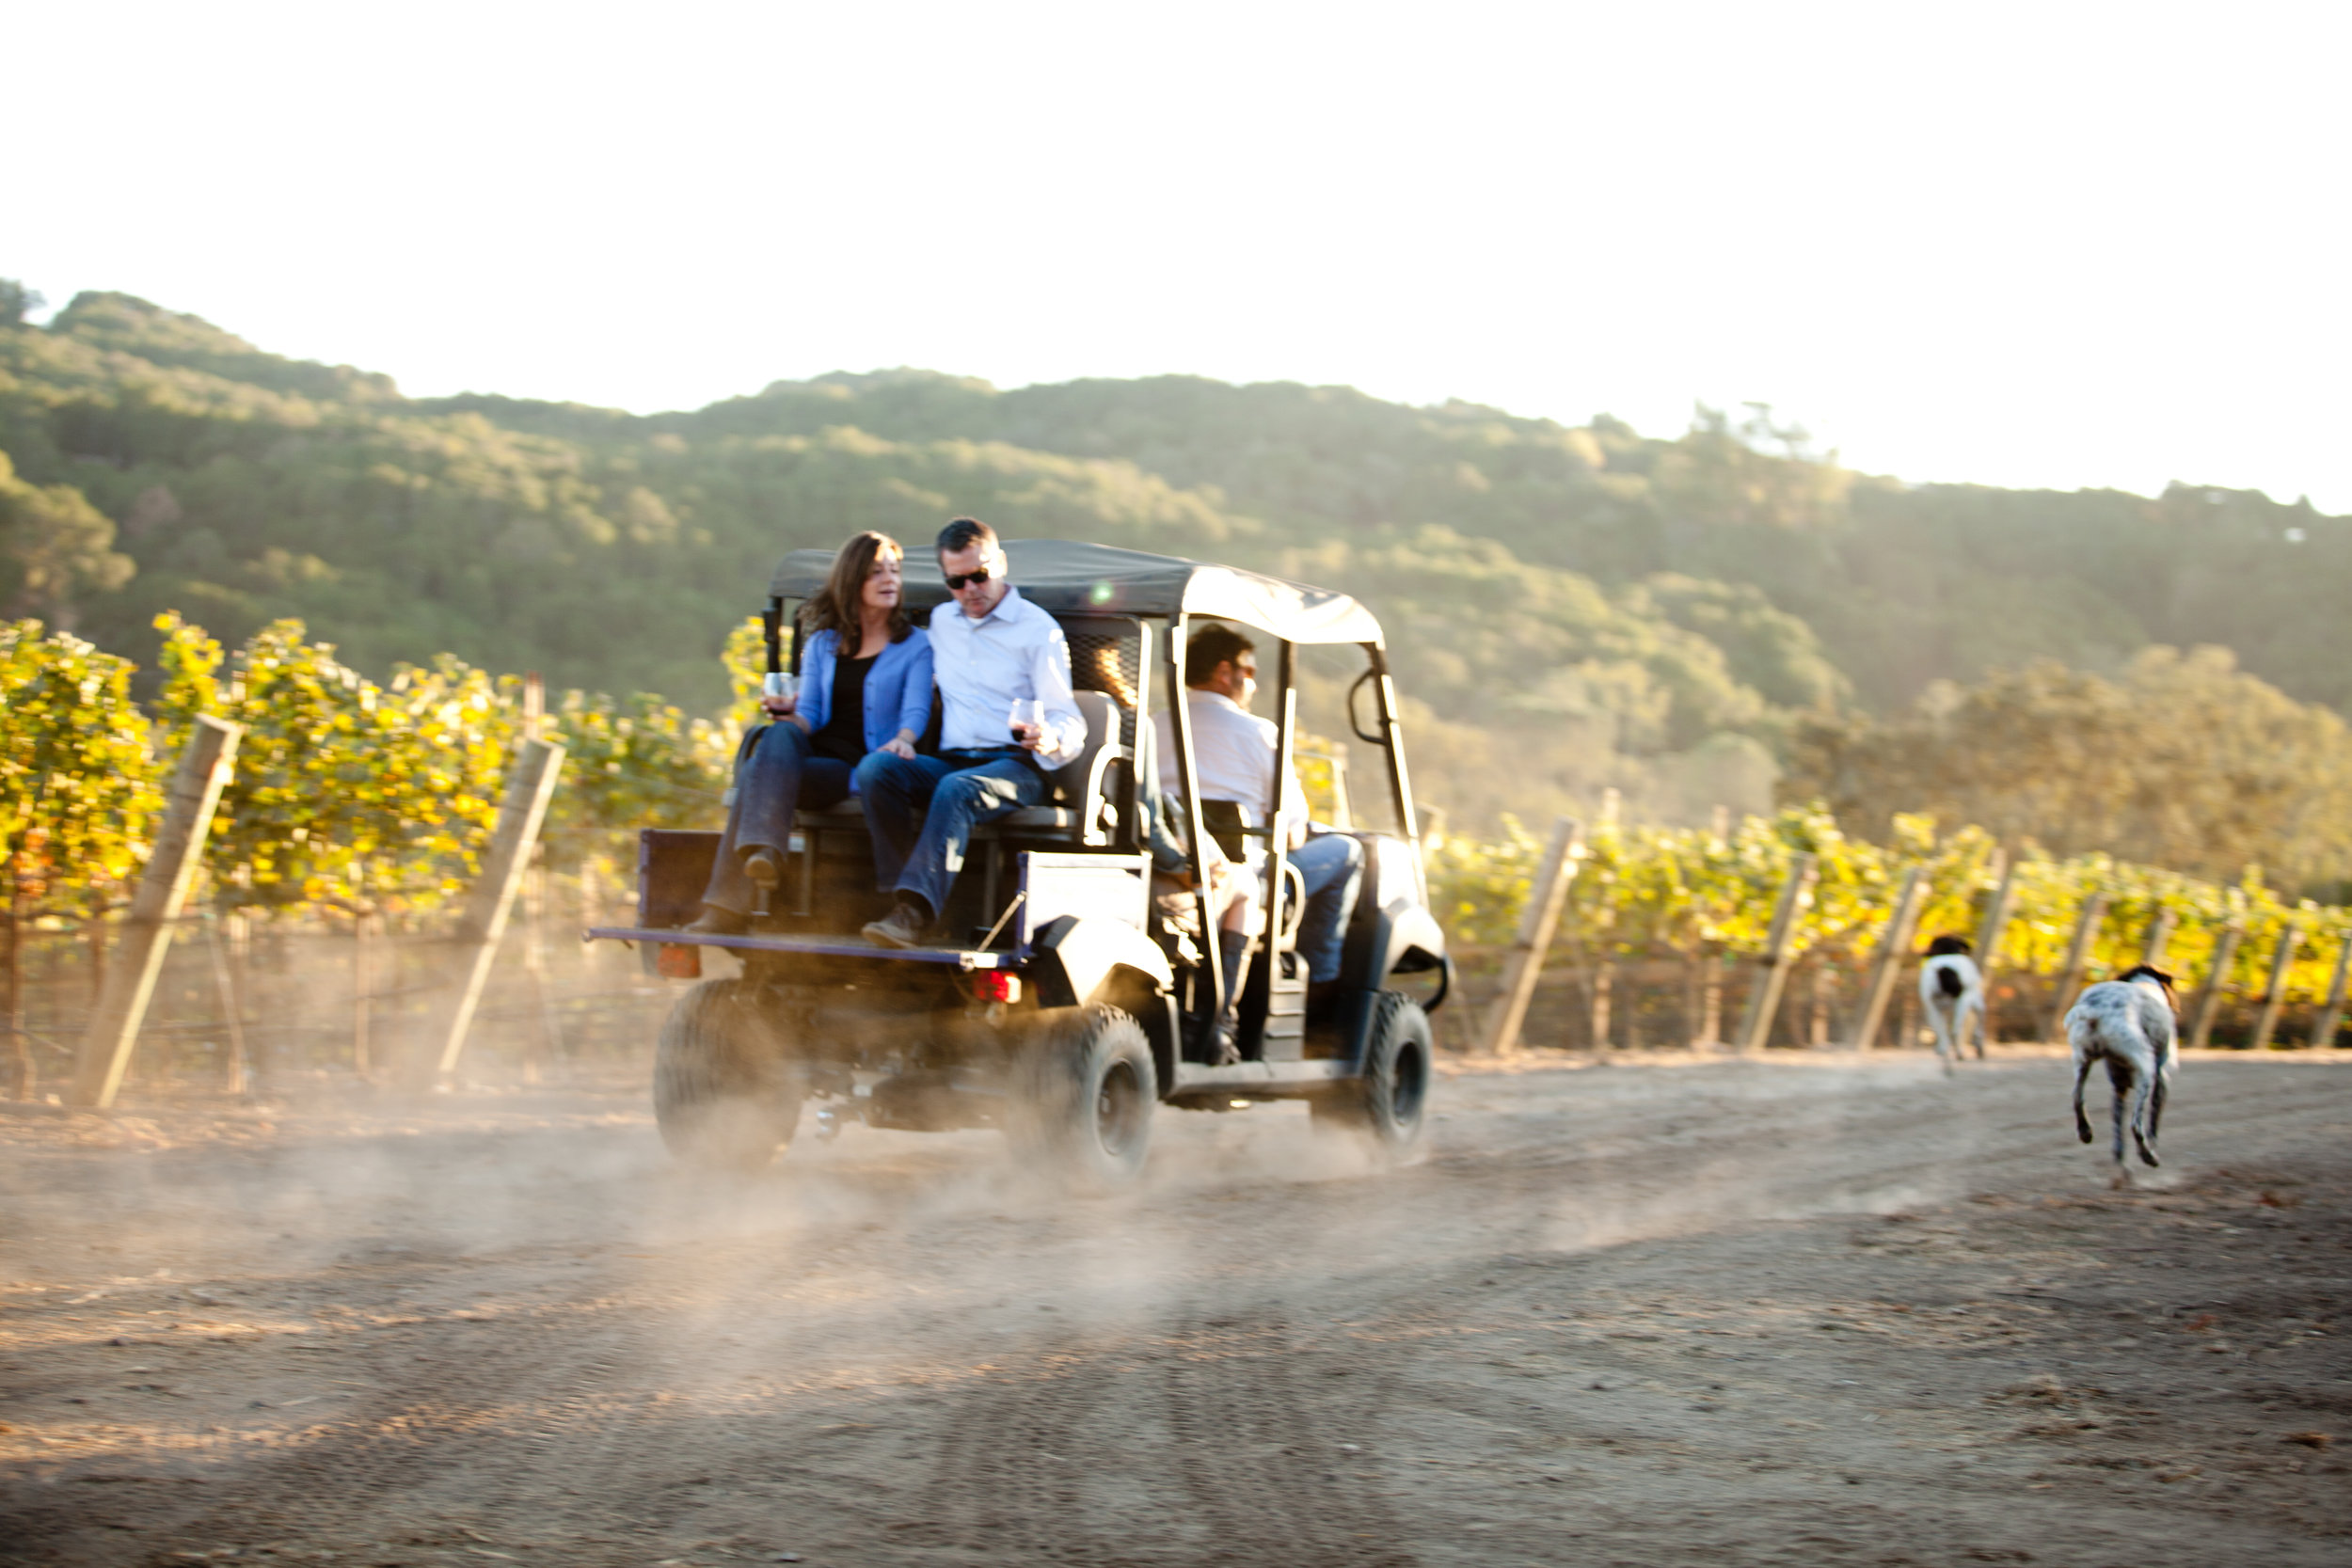 Winn and ted go off roading, napa style.